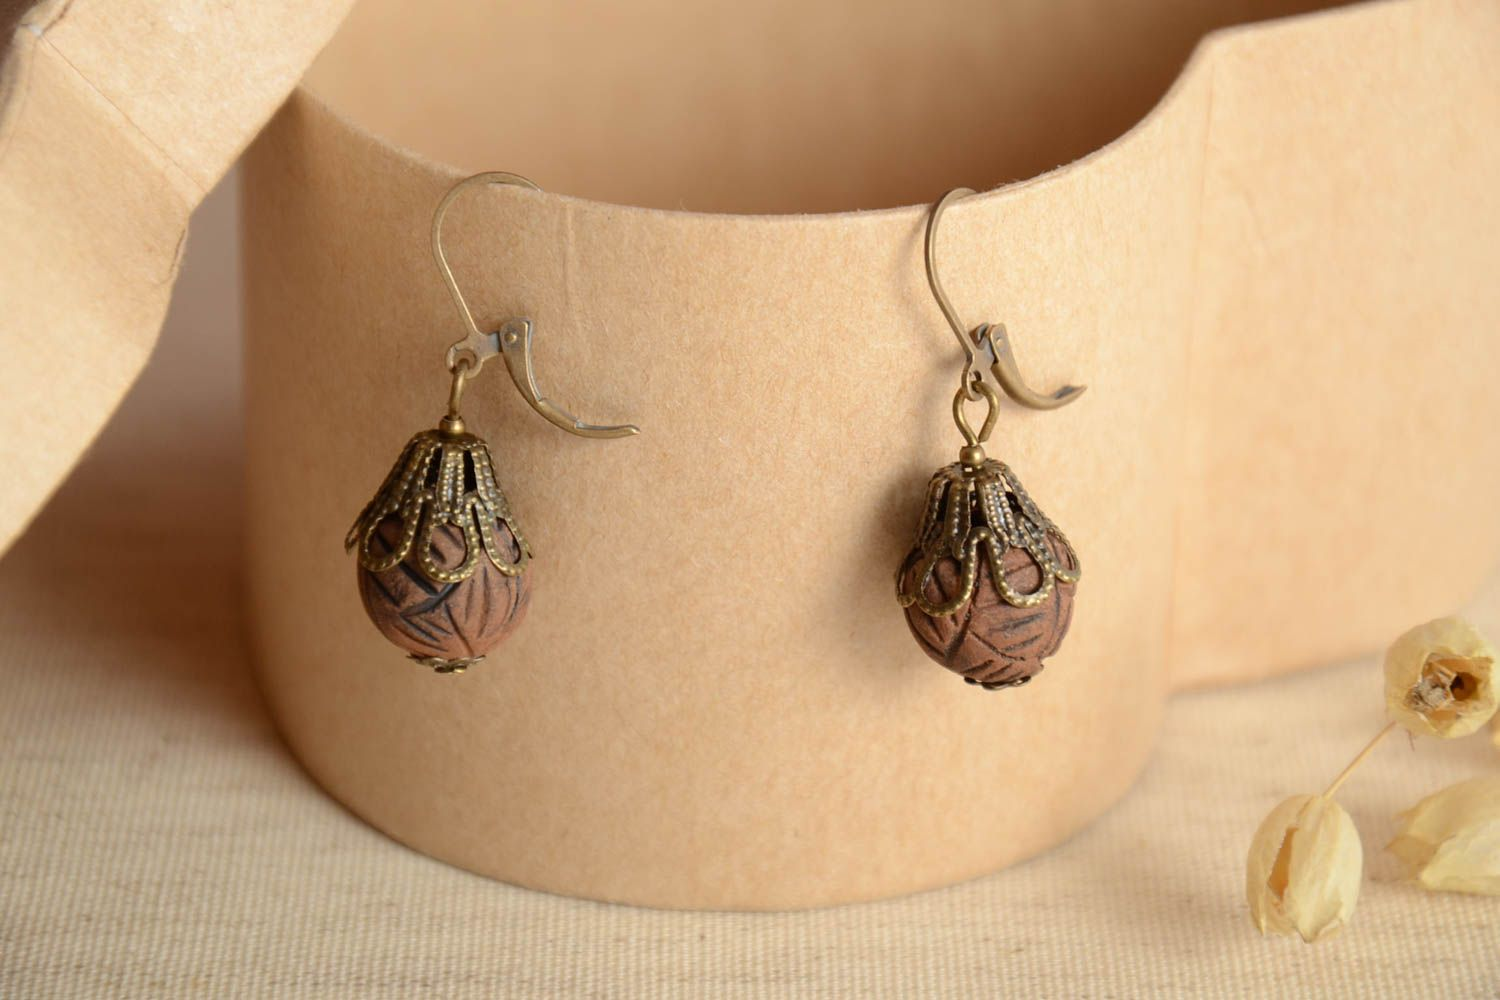 Stylish handmade clay earrings ceramic earrings for women designer accessories photo 1